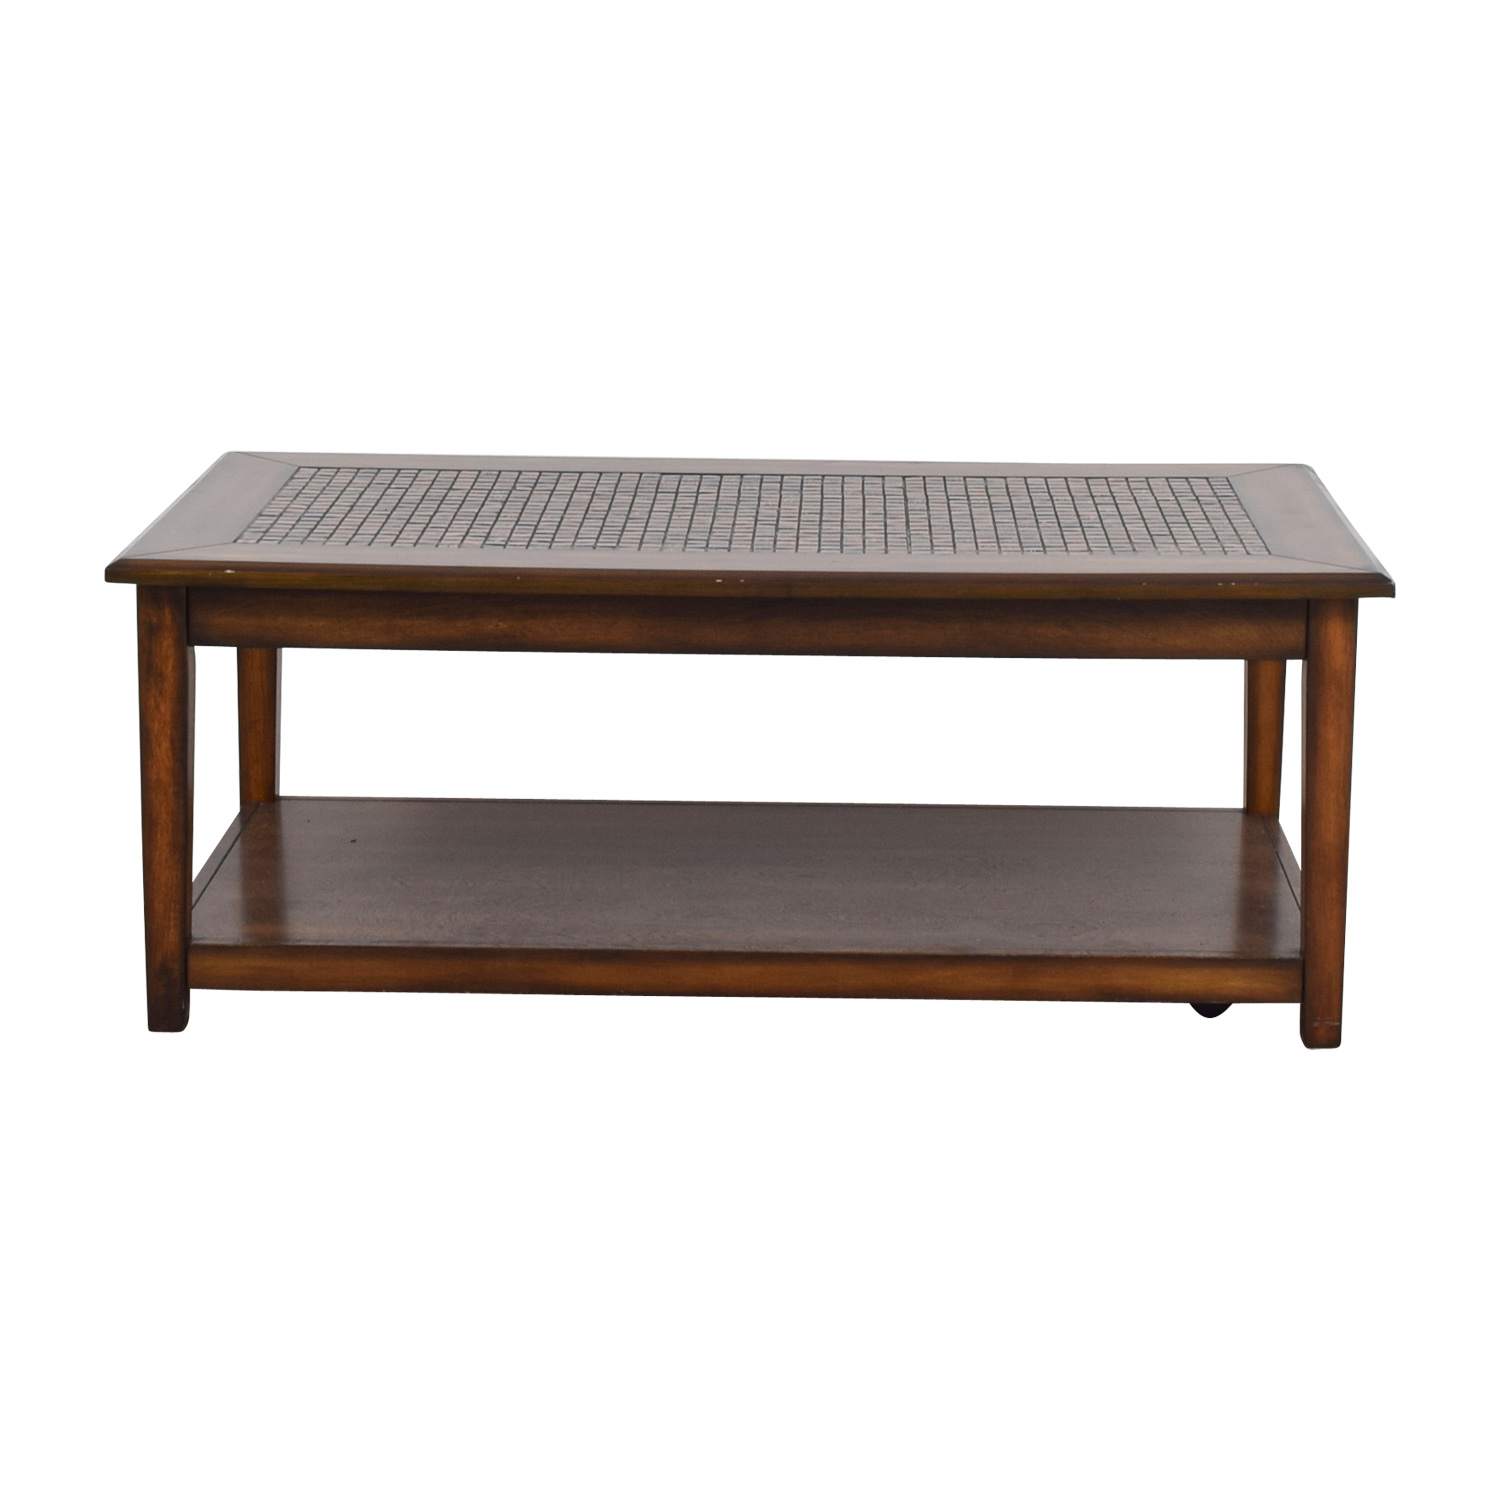 shop Raymour & Flanigan Wynn Mosaic Wood Coffee Table Raymour & Flanigan